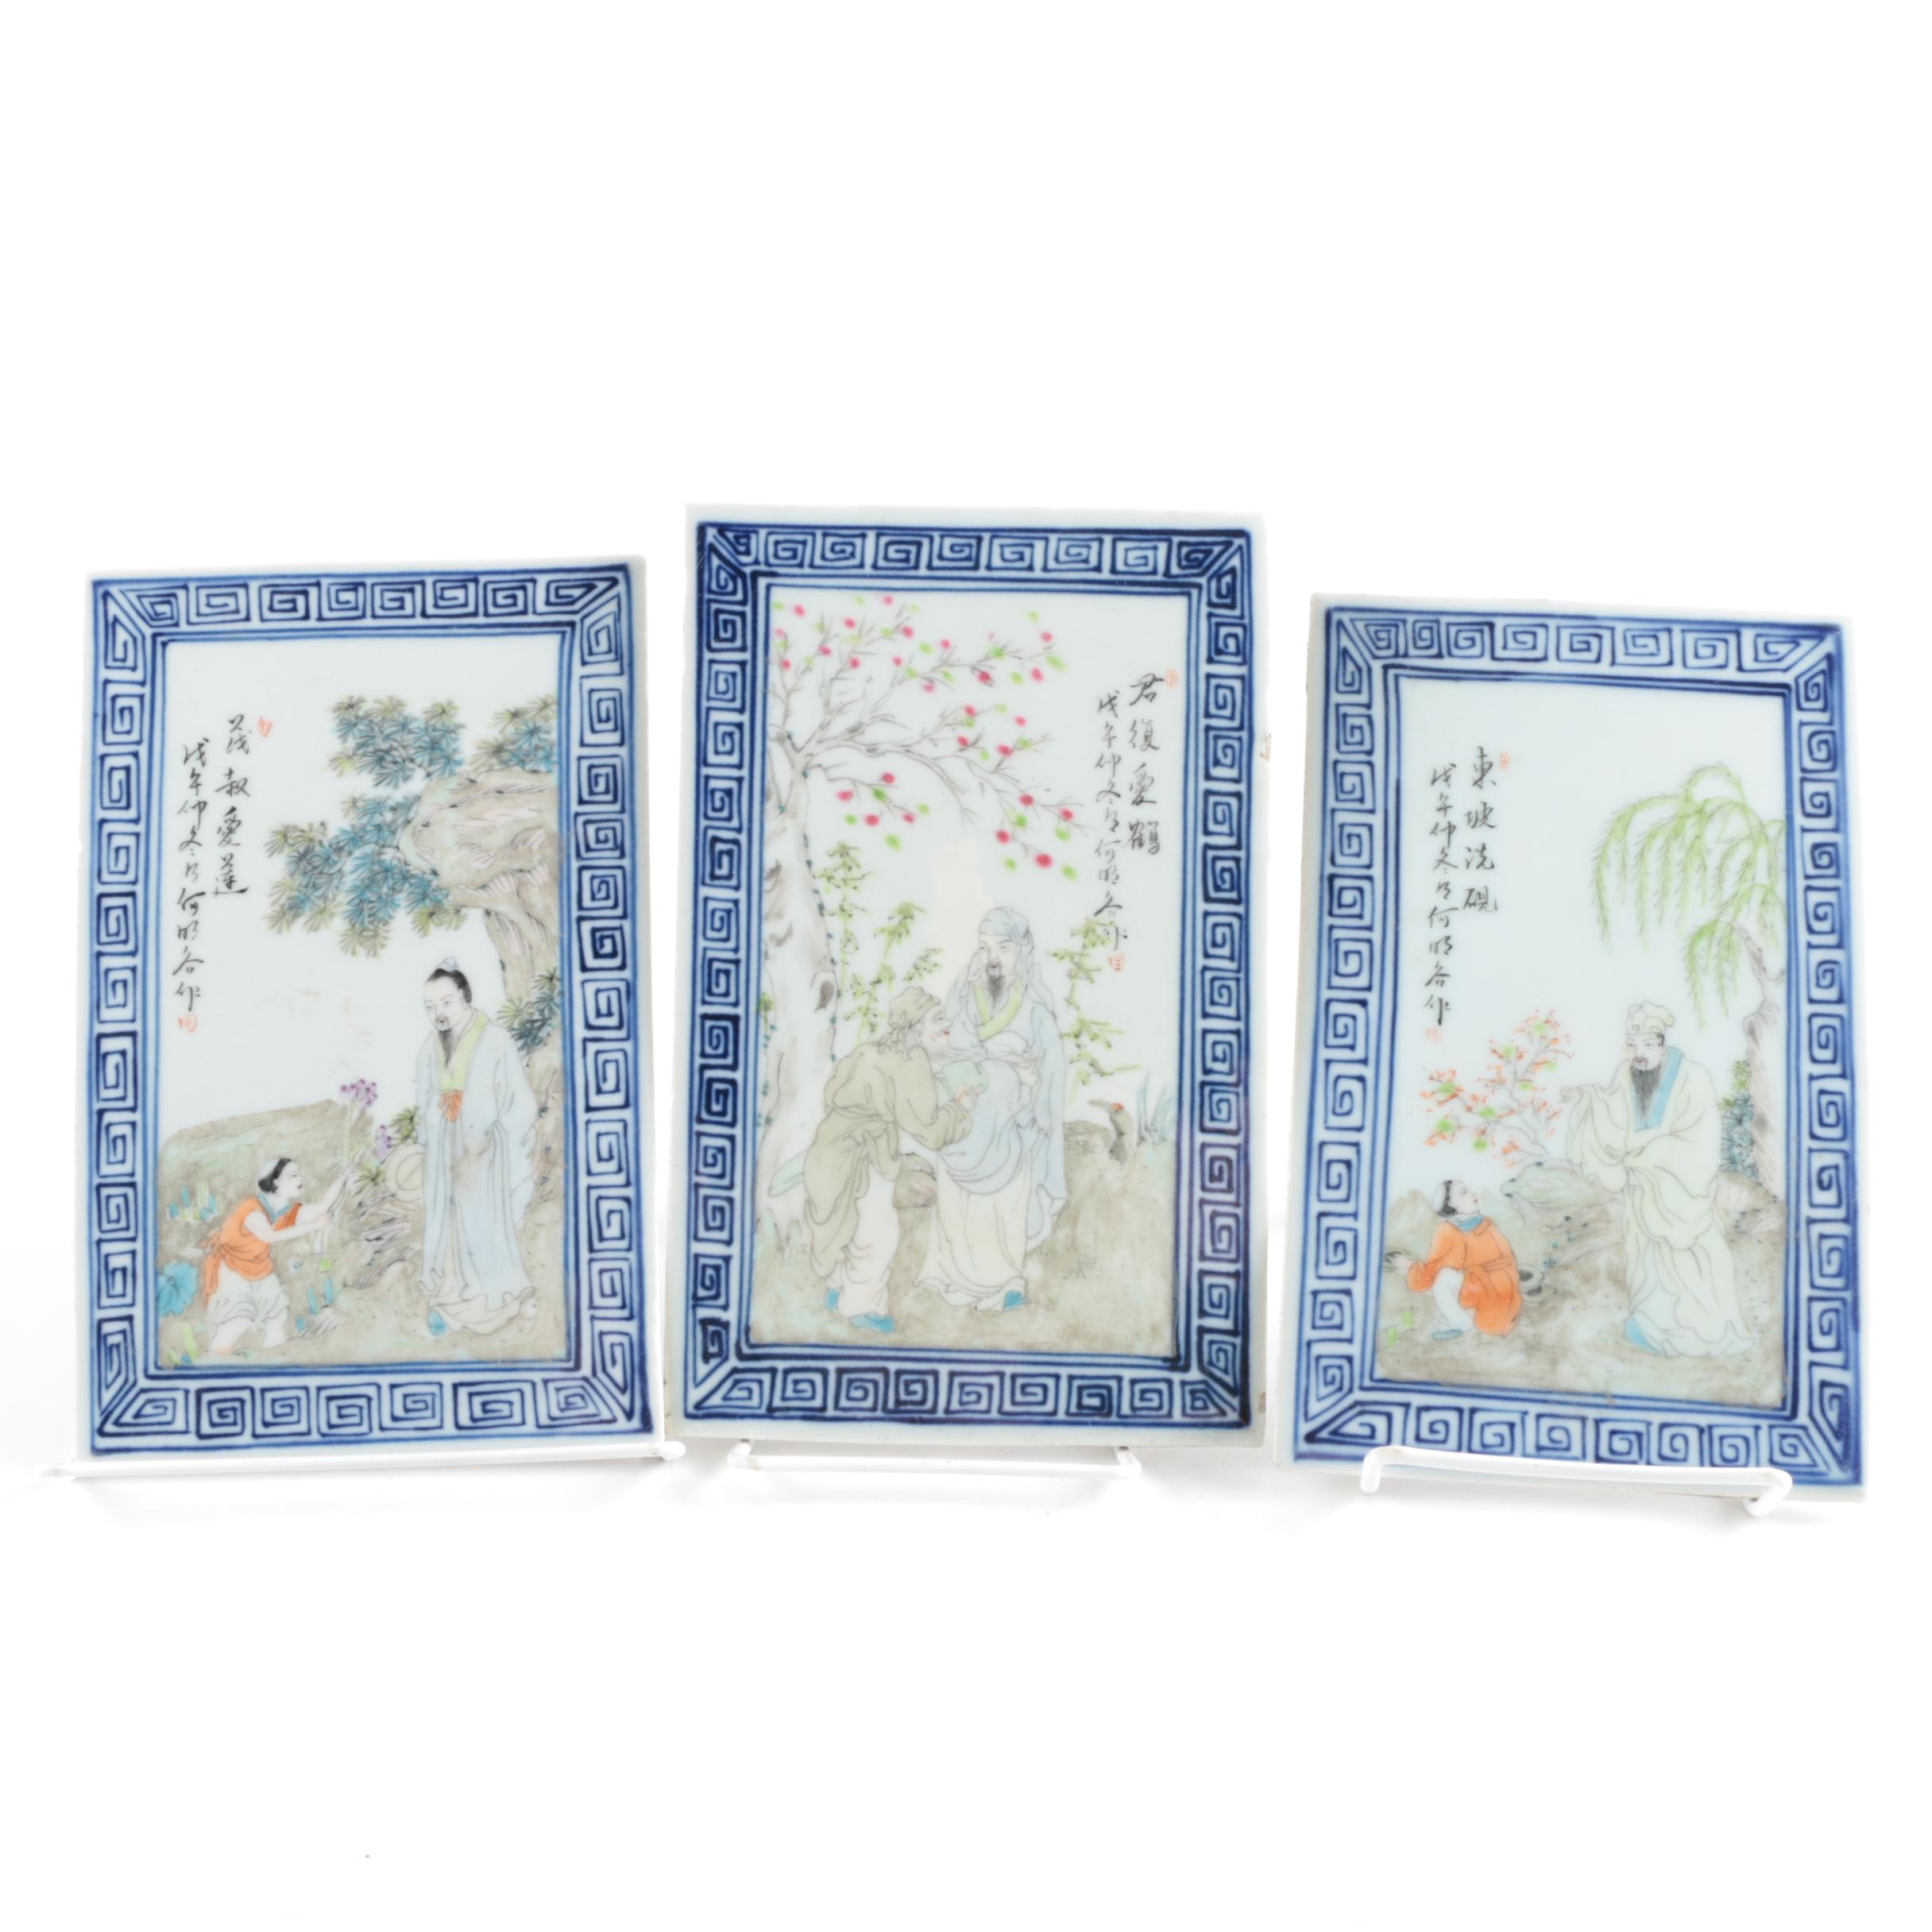 Vintage Chinese Painted Ceramic Tiles